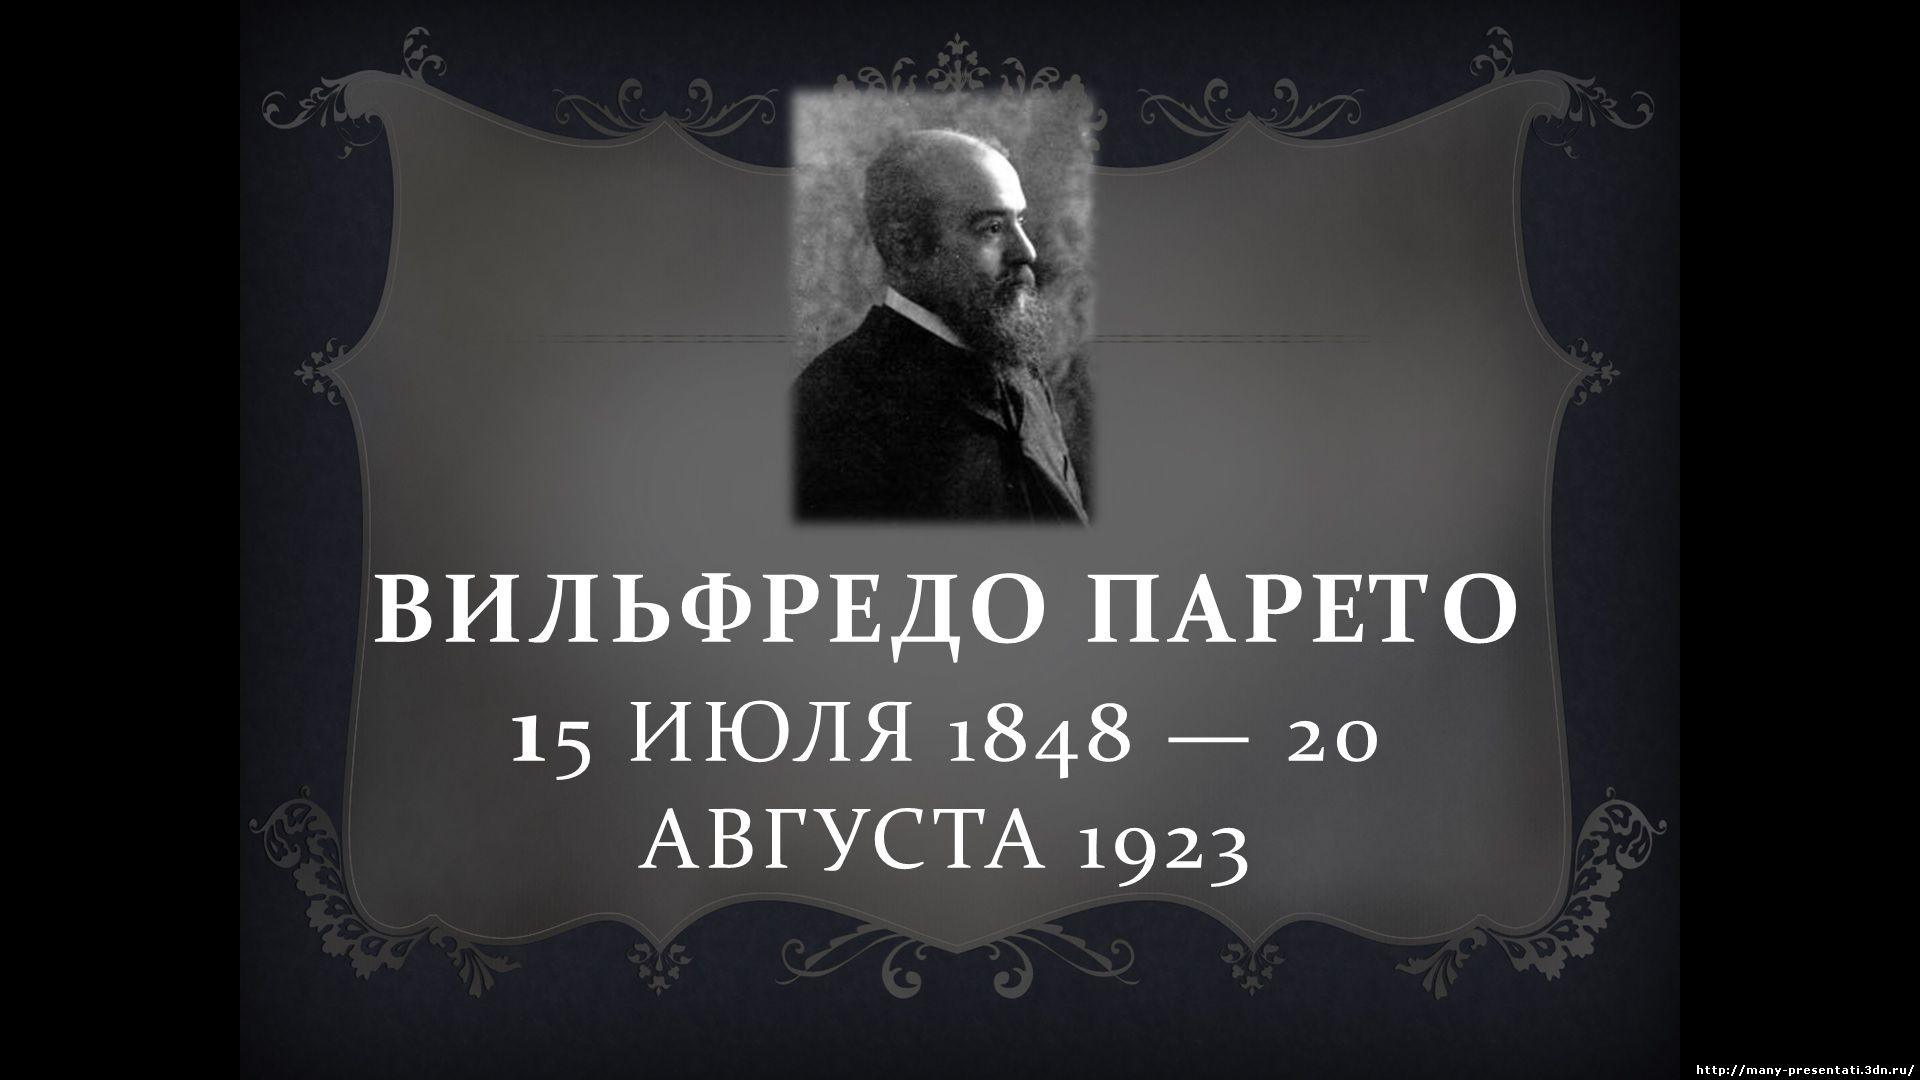 biography about vilfredo pareto essay Vilfredo pareto facts: the italian sociologist, political theorist, and economist vilfredo pareto (1848-1923) is chiefly known for his influential theory of ruling elites and for his equally influential theory that political behavior is essentially irrat.